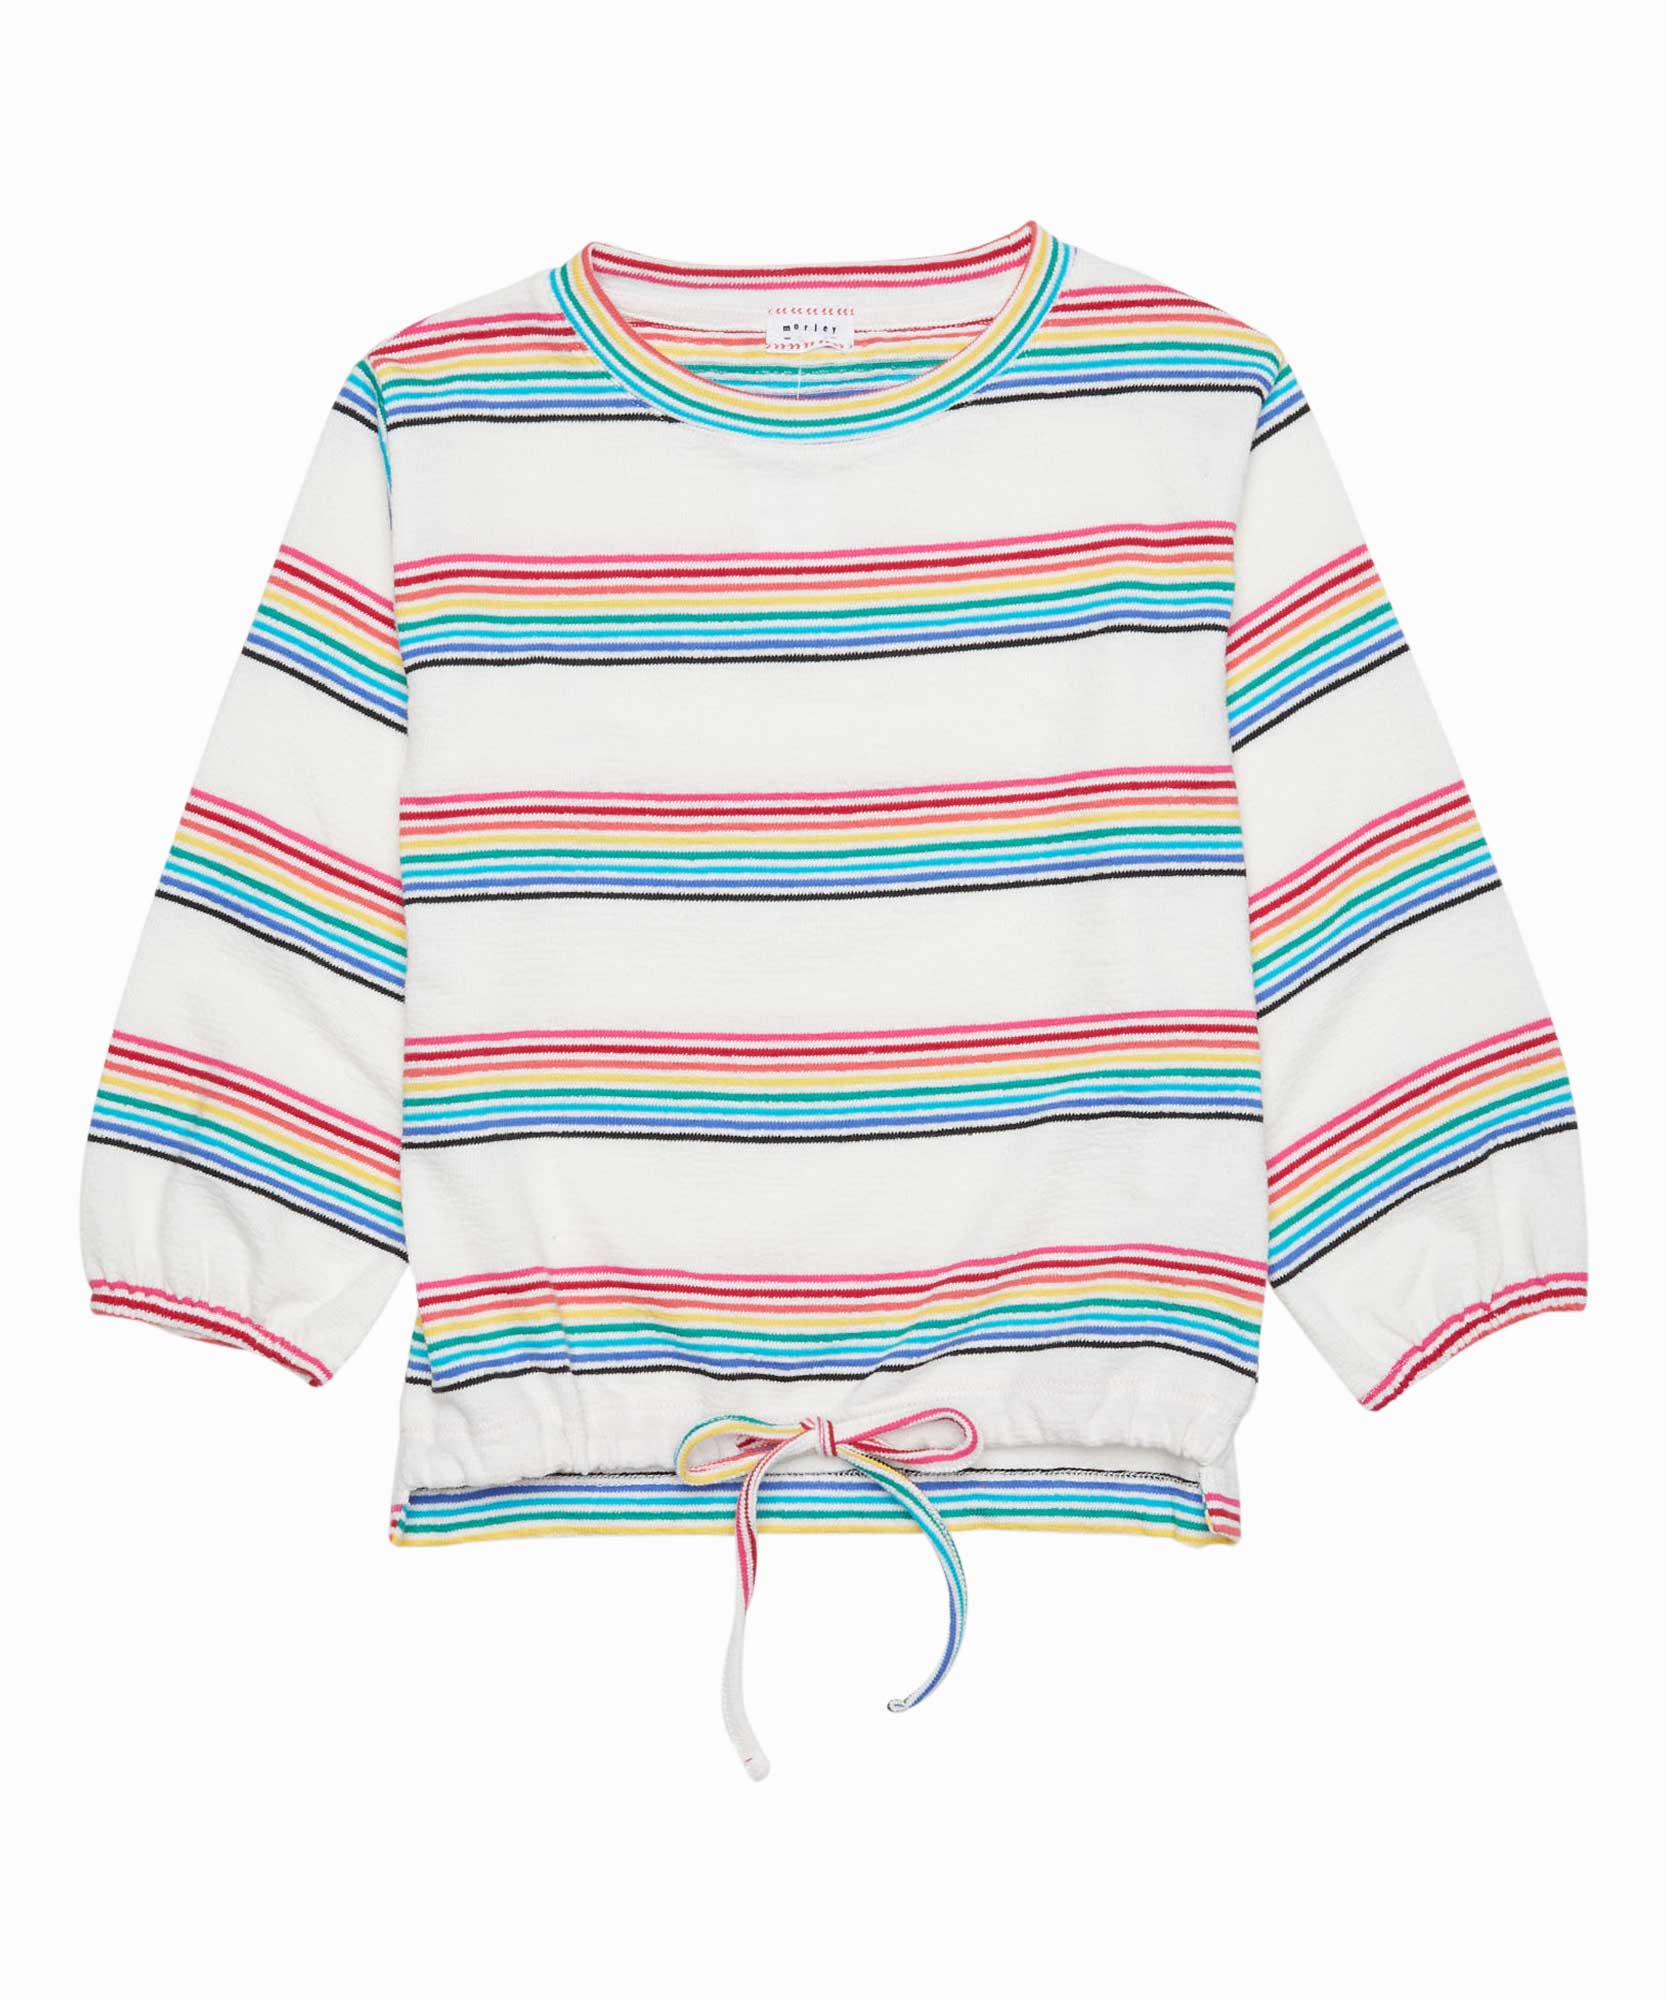 Lori Rainbow Striped Sweatshirt